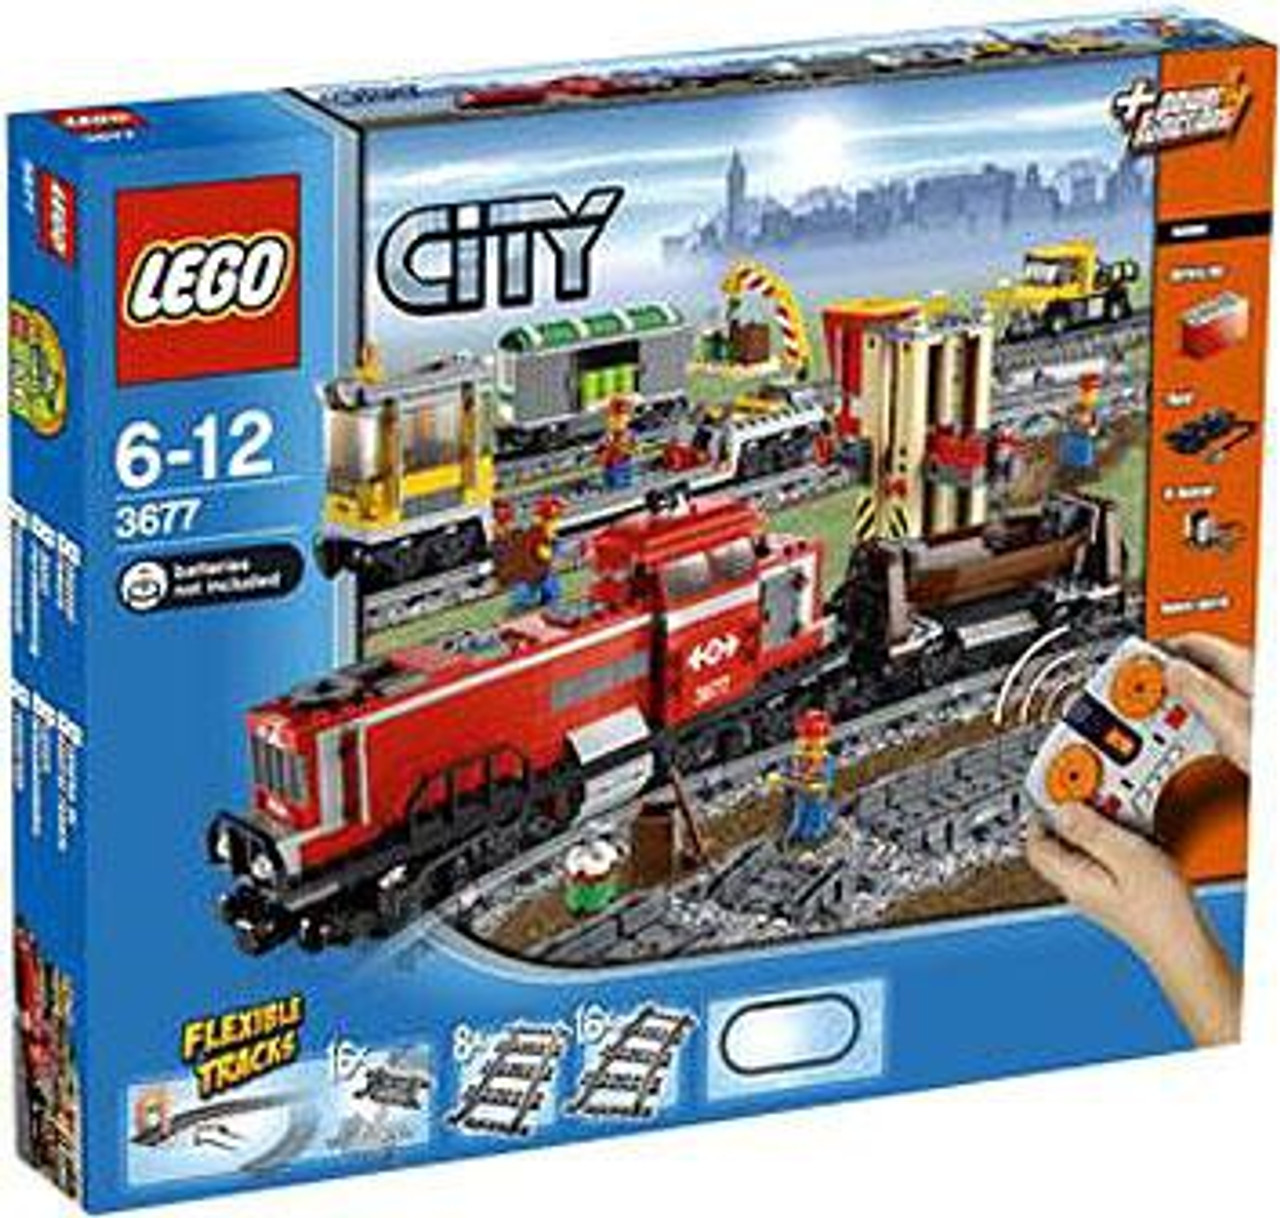 LEGO City Red Cargo Train Set #3677